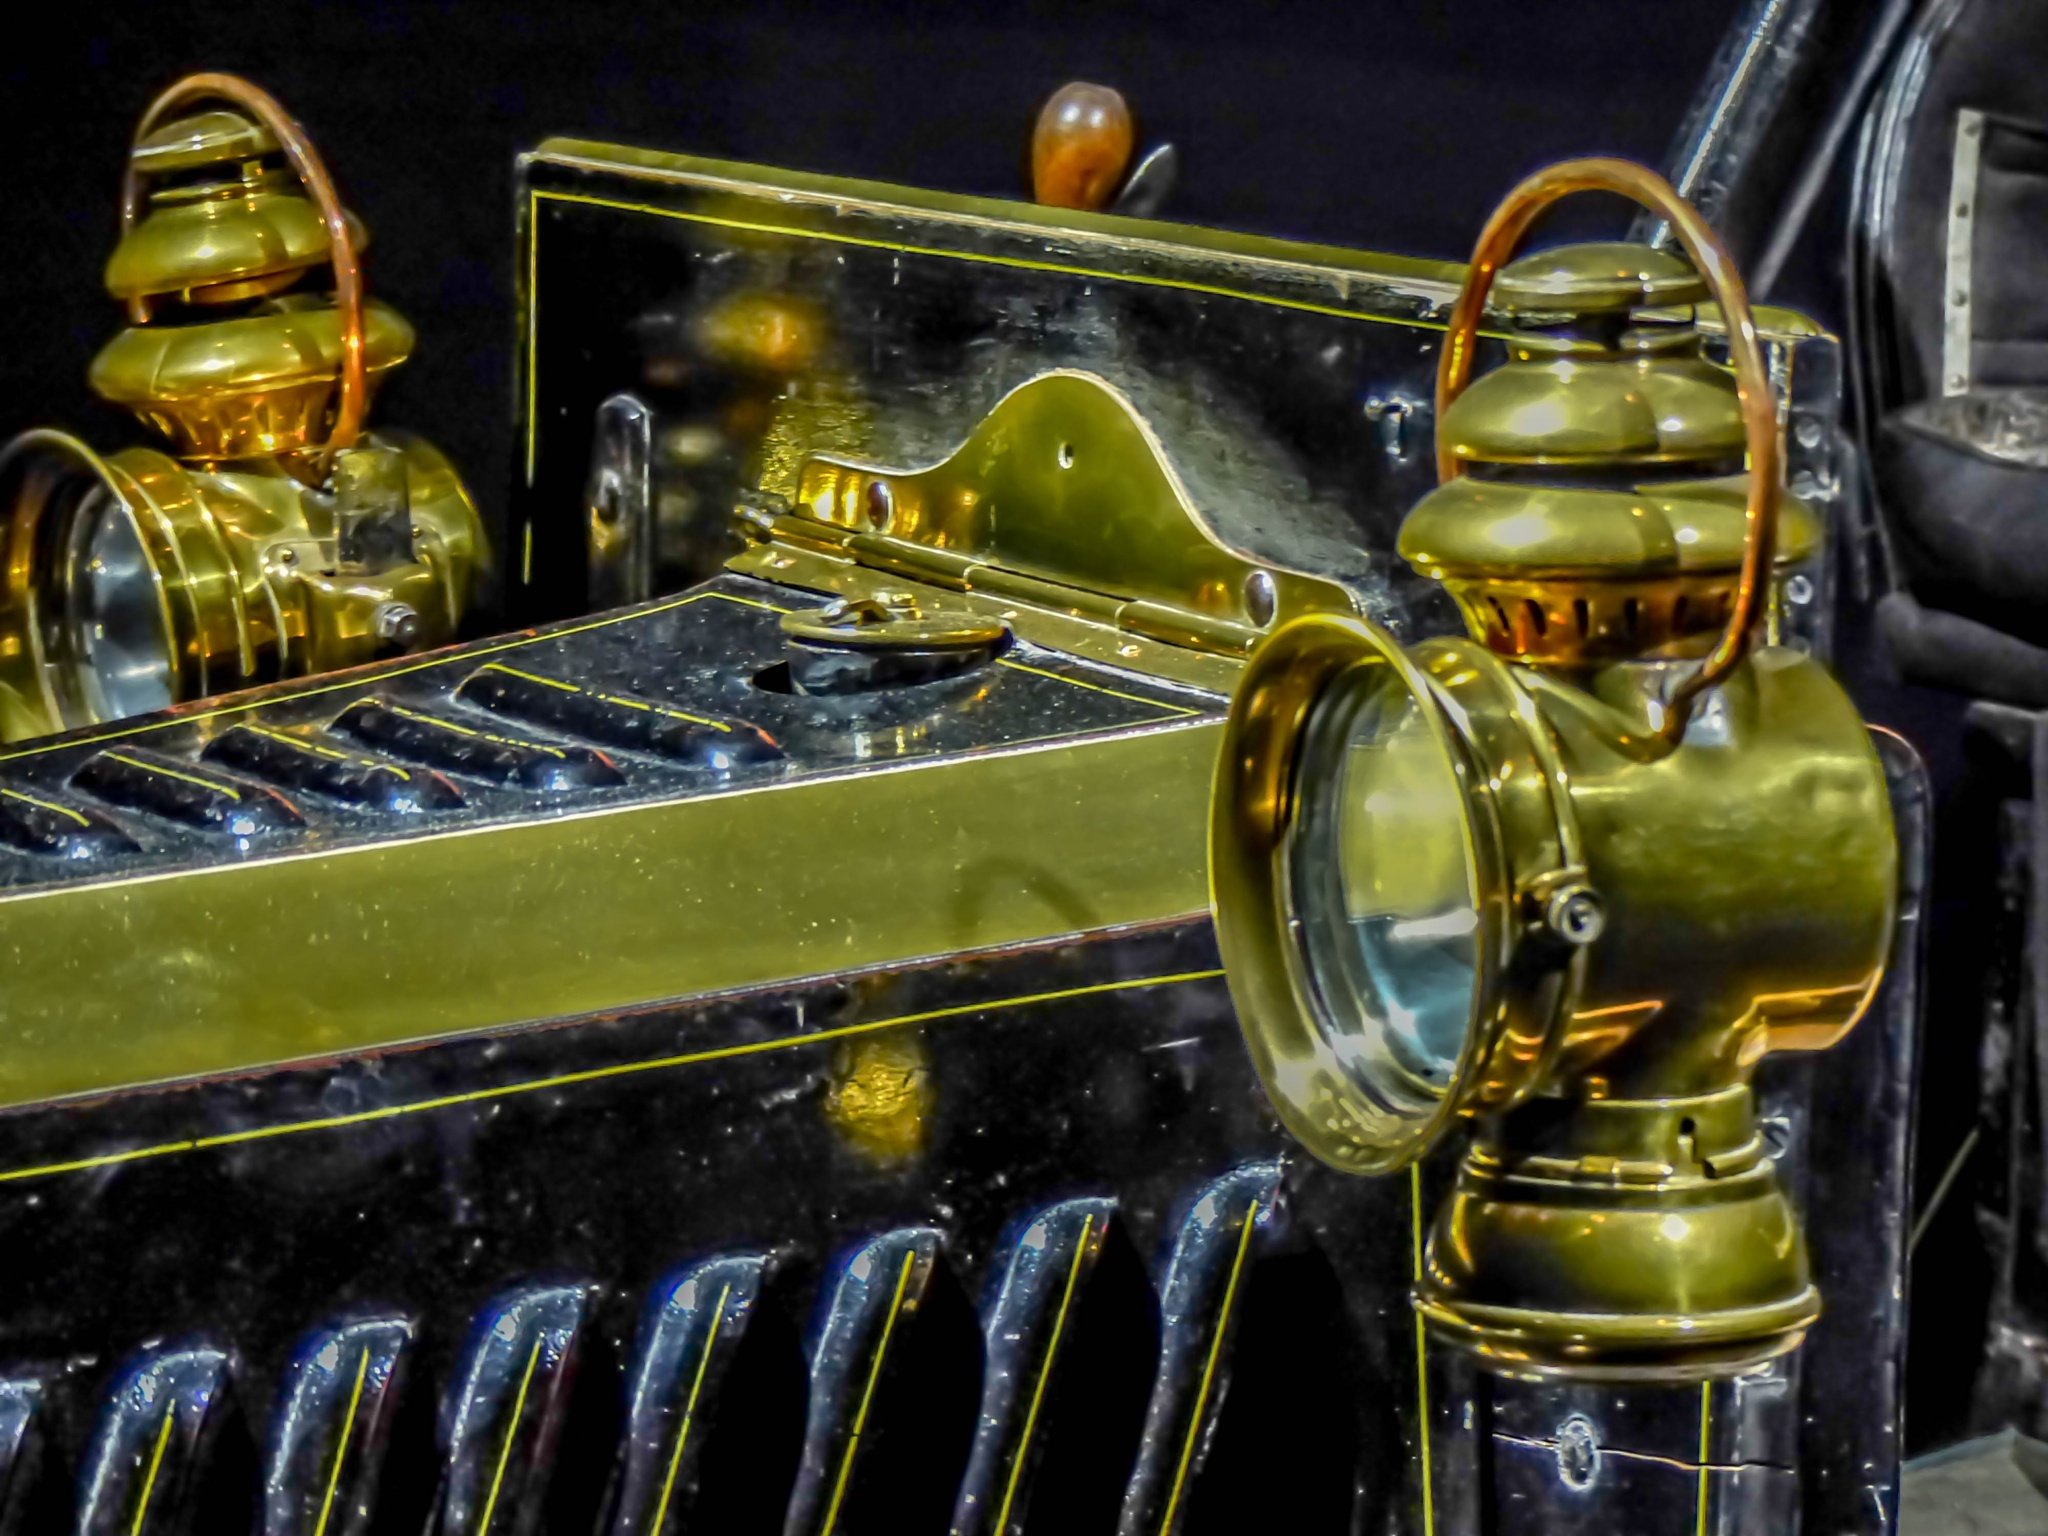 Automuseum by Richy